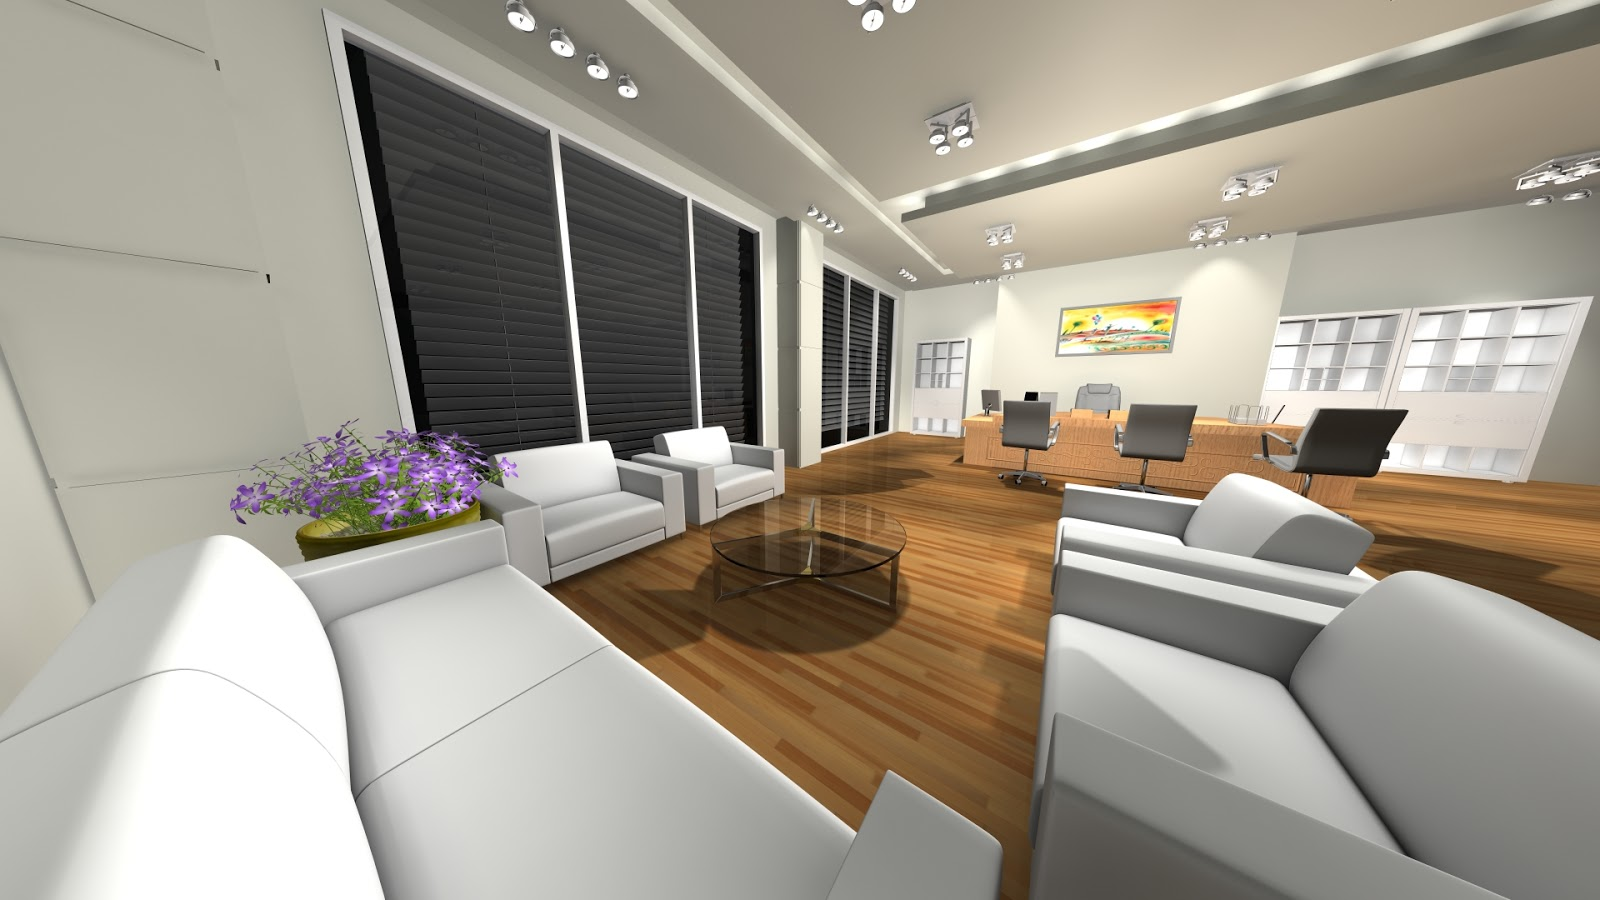 Sajid designer office room 3d interior design 3ds max for 3d room builder